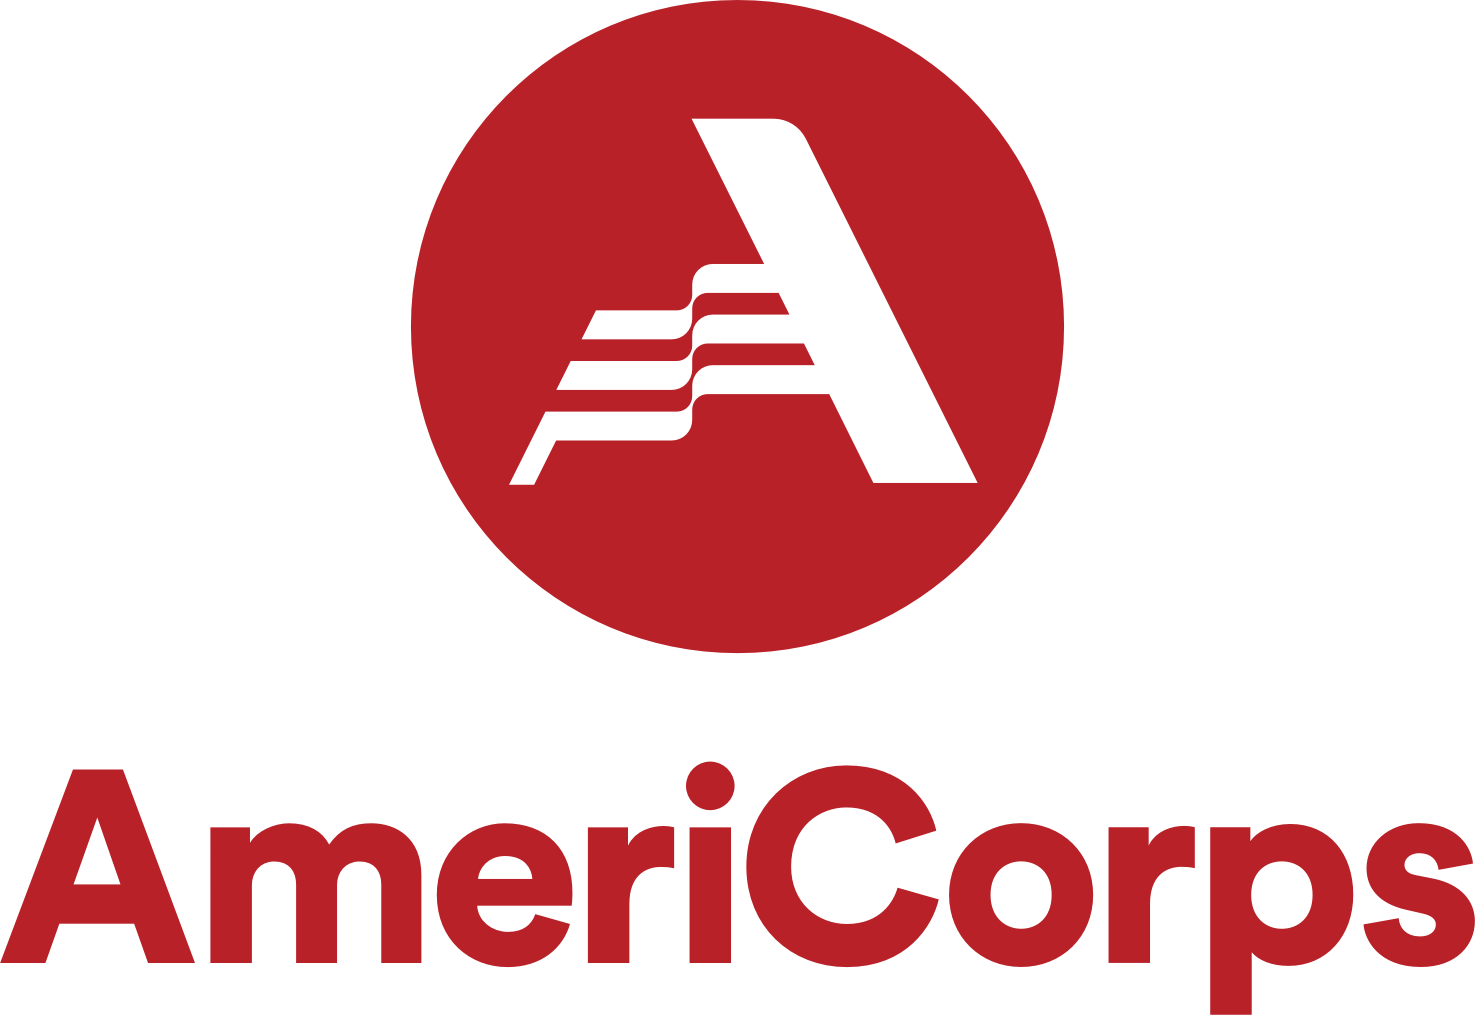 Americorps Stackedlogo Crimson